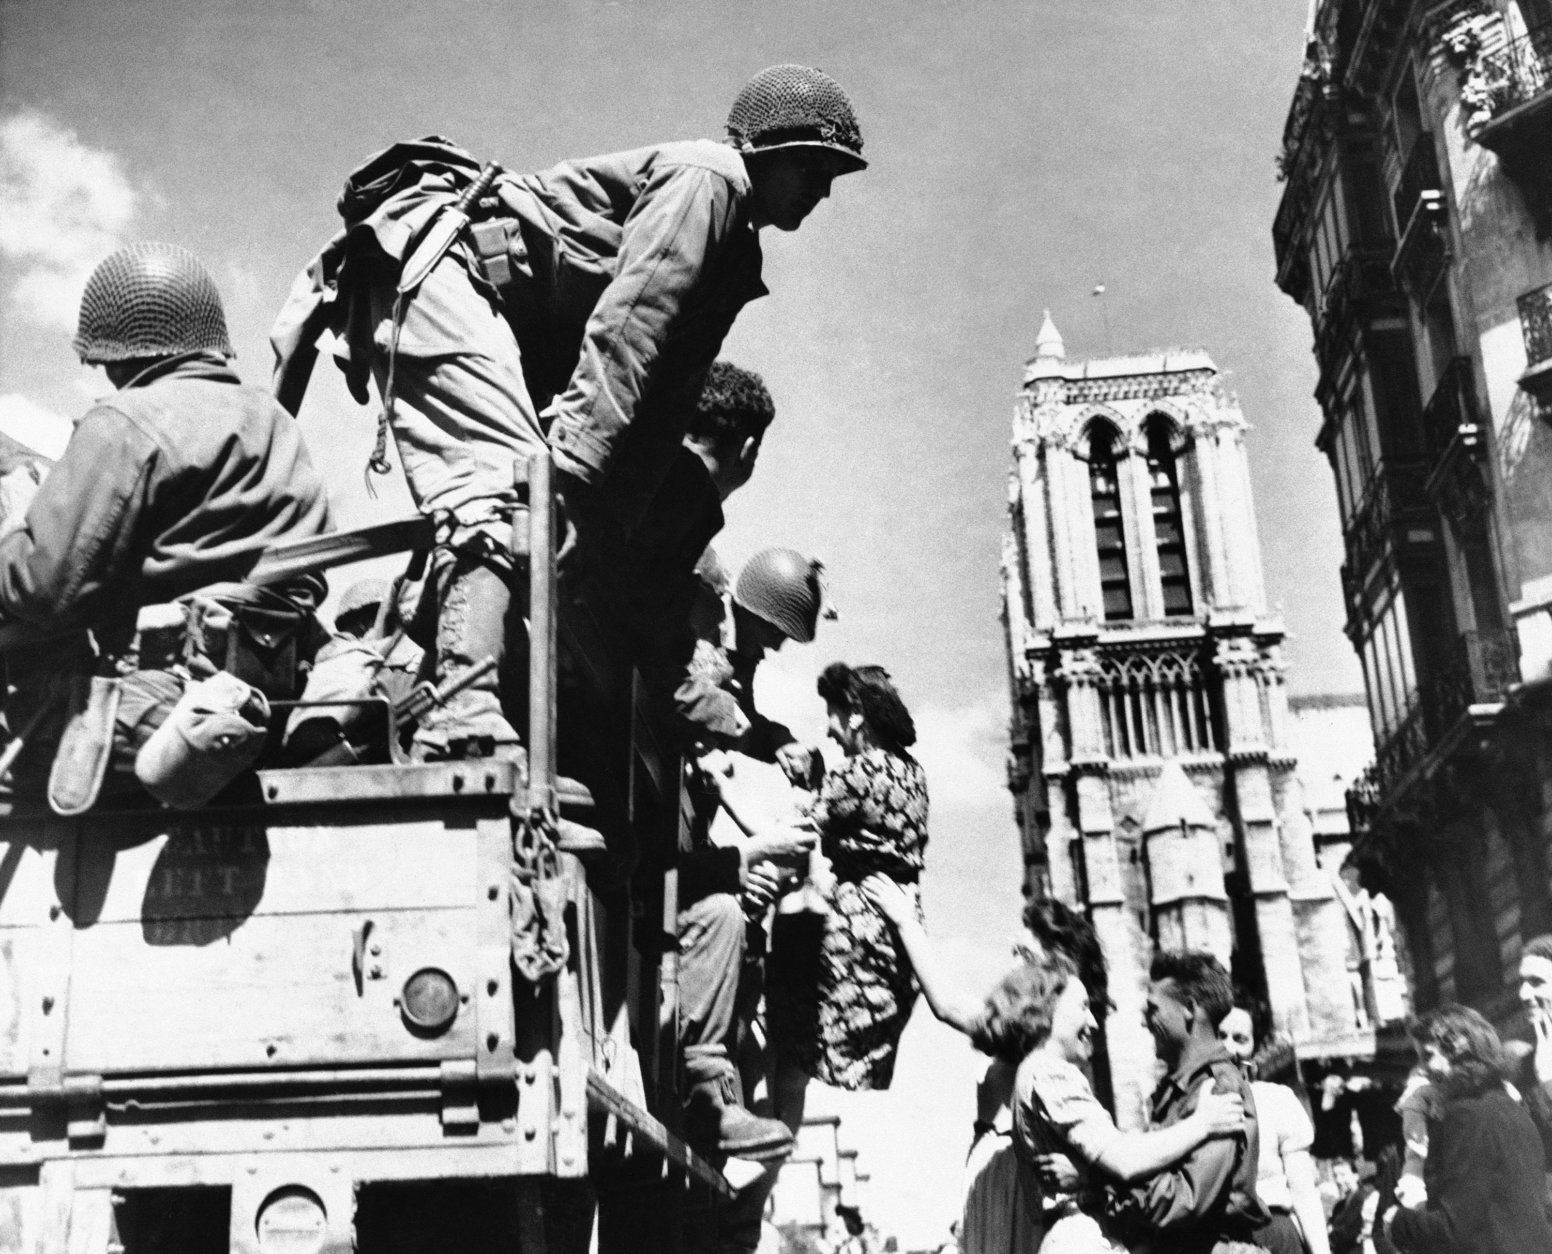 United States soldiers are shown being joyfully greeted by French women in the shadow of Notre Dame Cathedral in Paris, August 28, 1944. They dance and one girl seems to be pulling a soldier from the truck. (AP Photo)